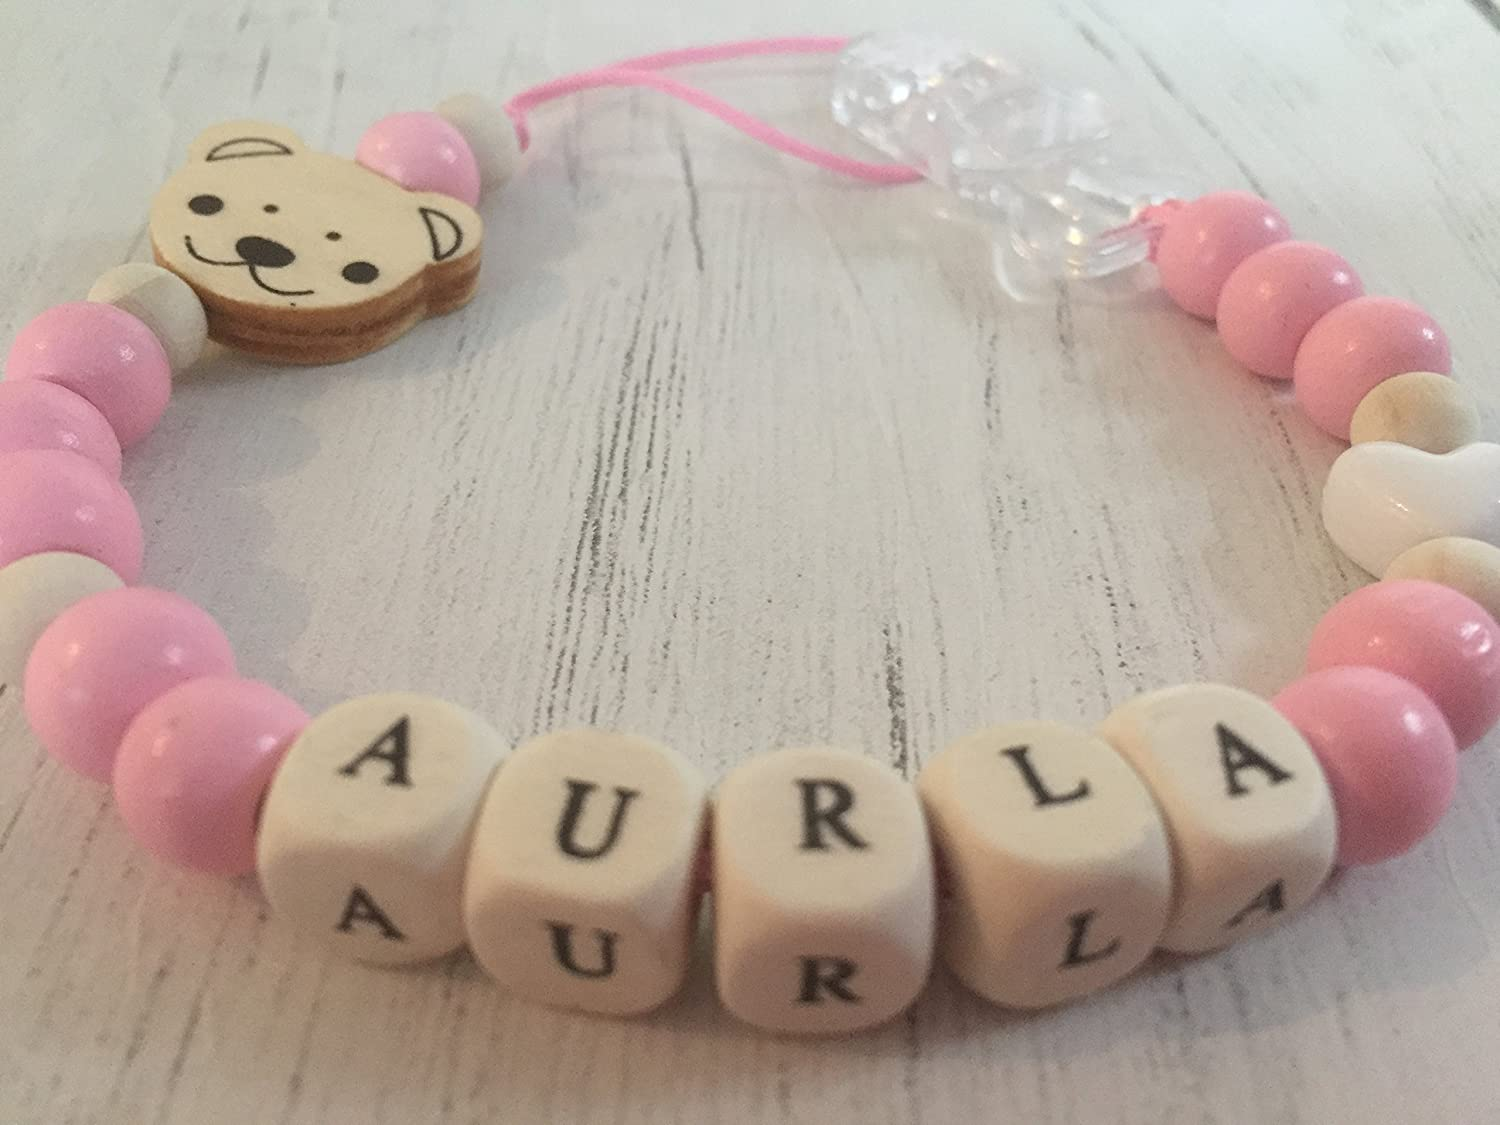 Baby Dummy Clip, Pacifier Holder, Soother Chain, Pink, Natural, White, White Heart, Flat Teddy Head, Maxiumum 8 Wooden Letters, Flat Teddy Head, Handmade from The U.K. Peace & Quiet